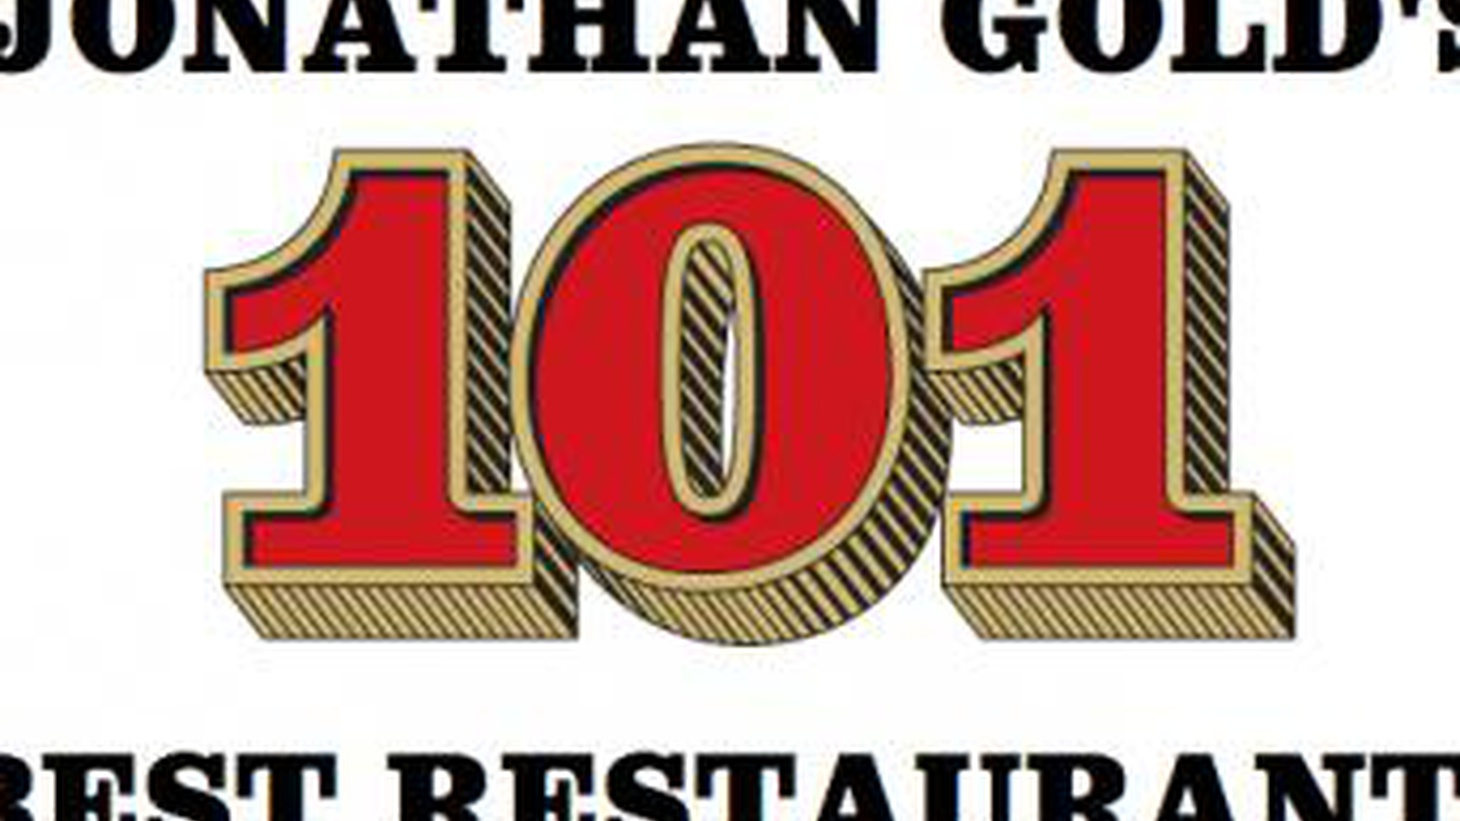 """This week the Los Angeles Times published the first annual """"Jonathan Gold's 101 Best Restaurants"""" guide."""